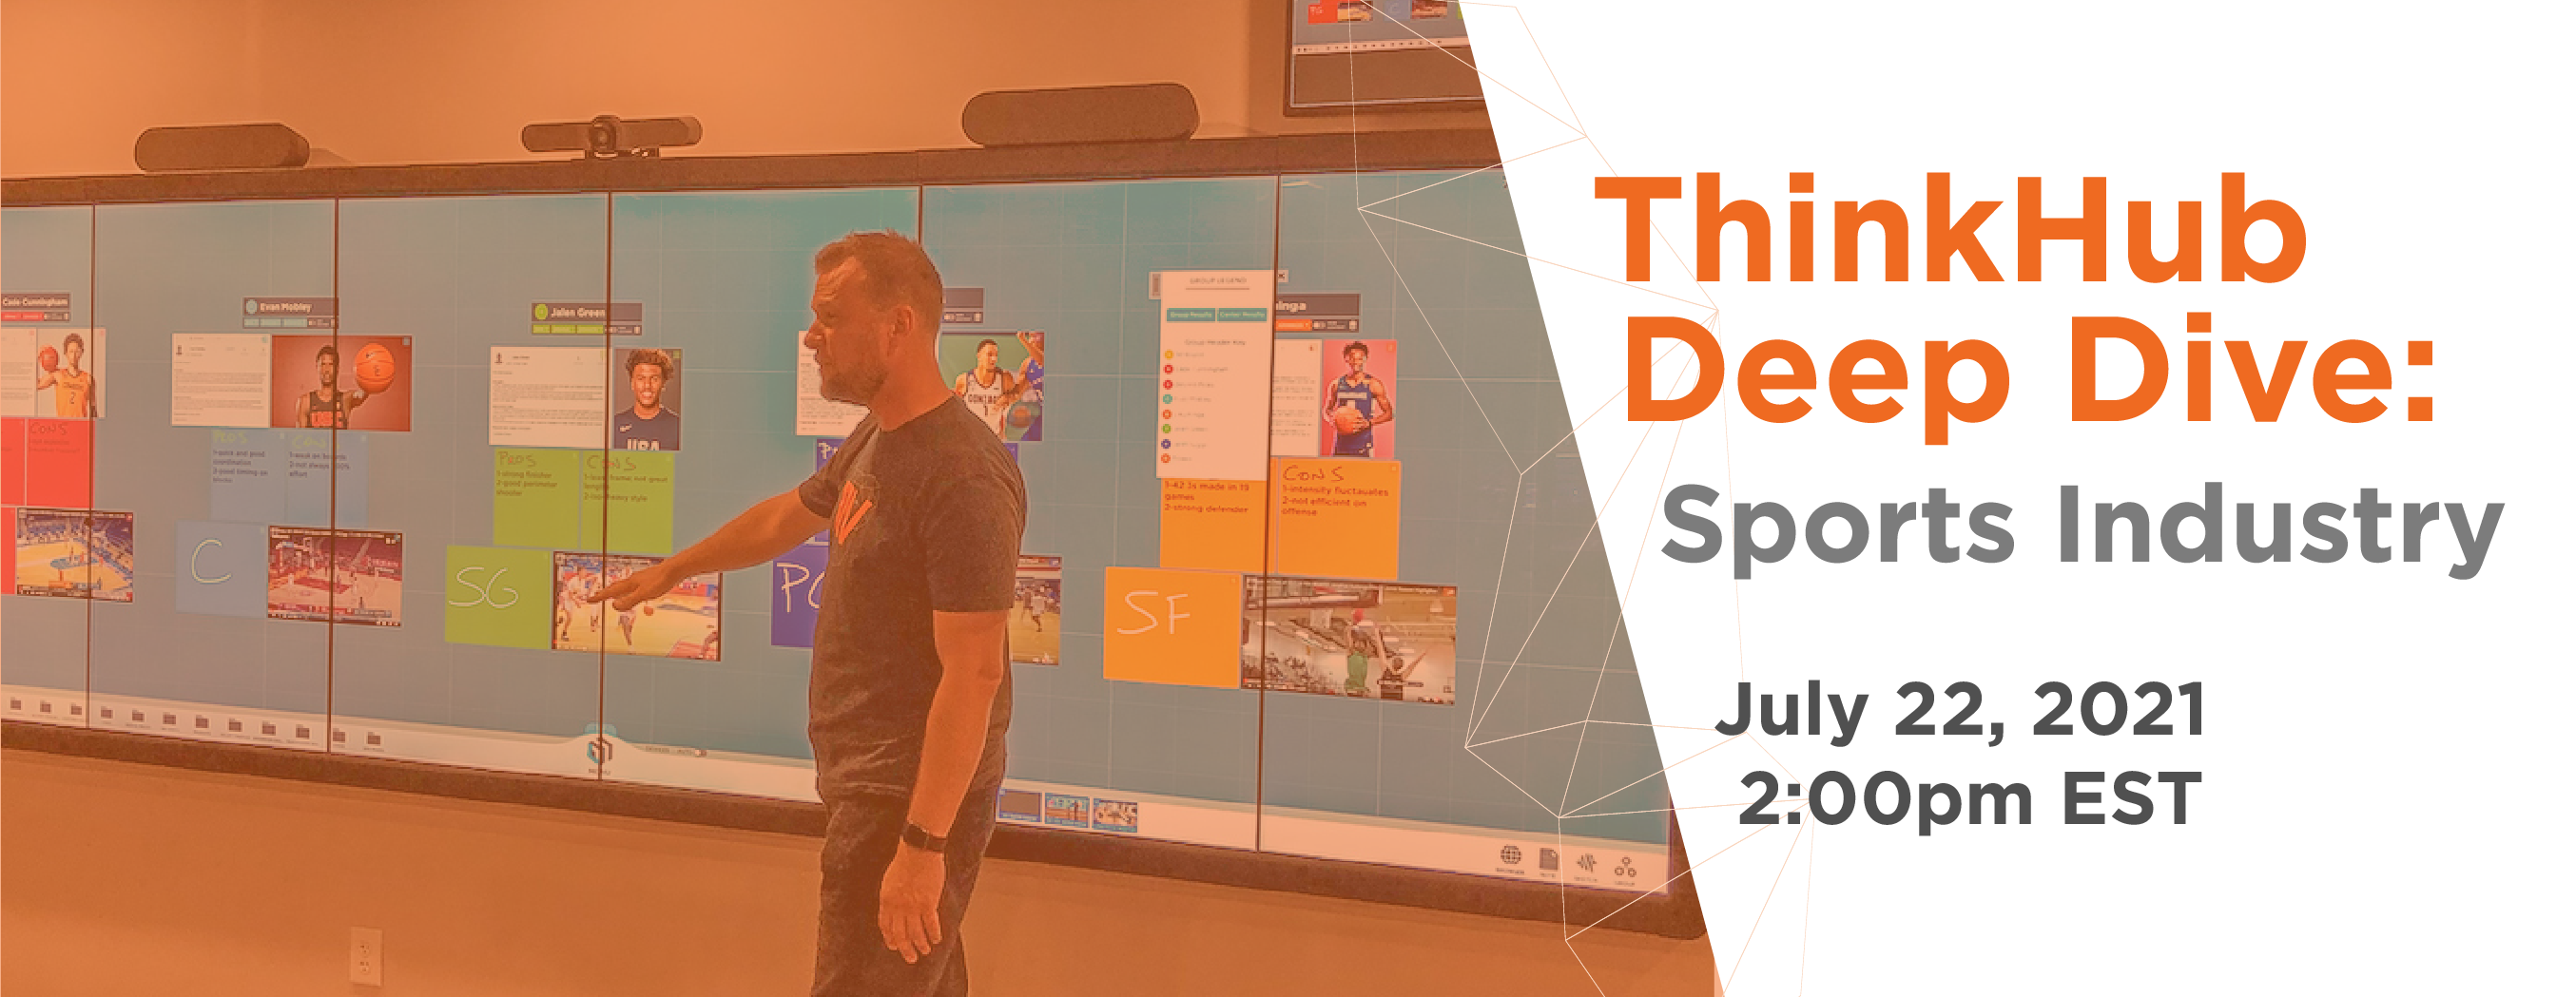 t1v-thinkhub-deep-dive-sports-industry-webinar-email-graphic-7.22.2021-est